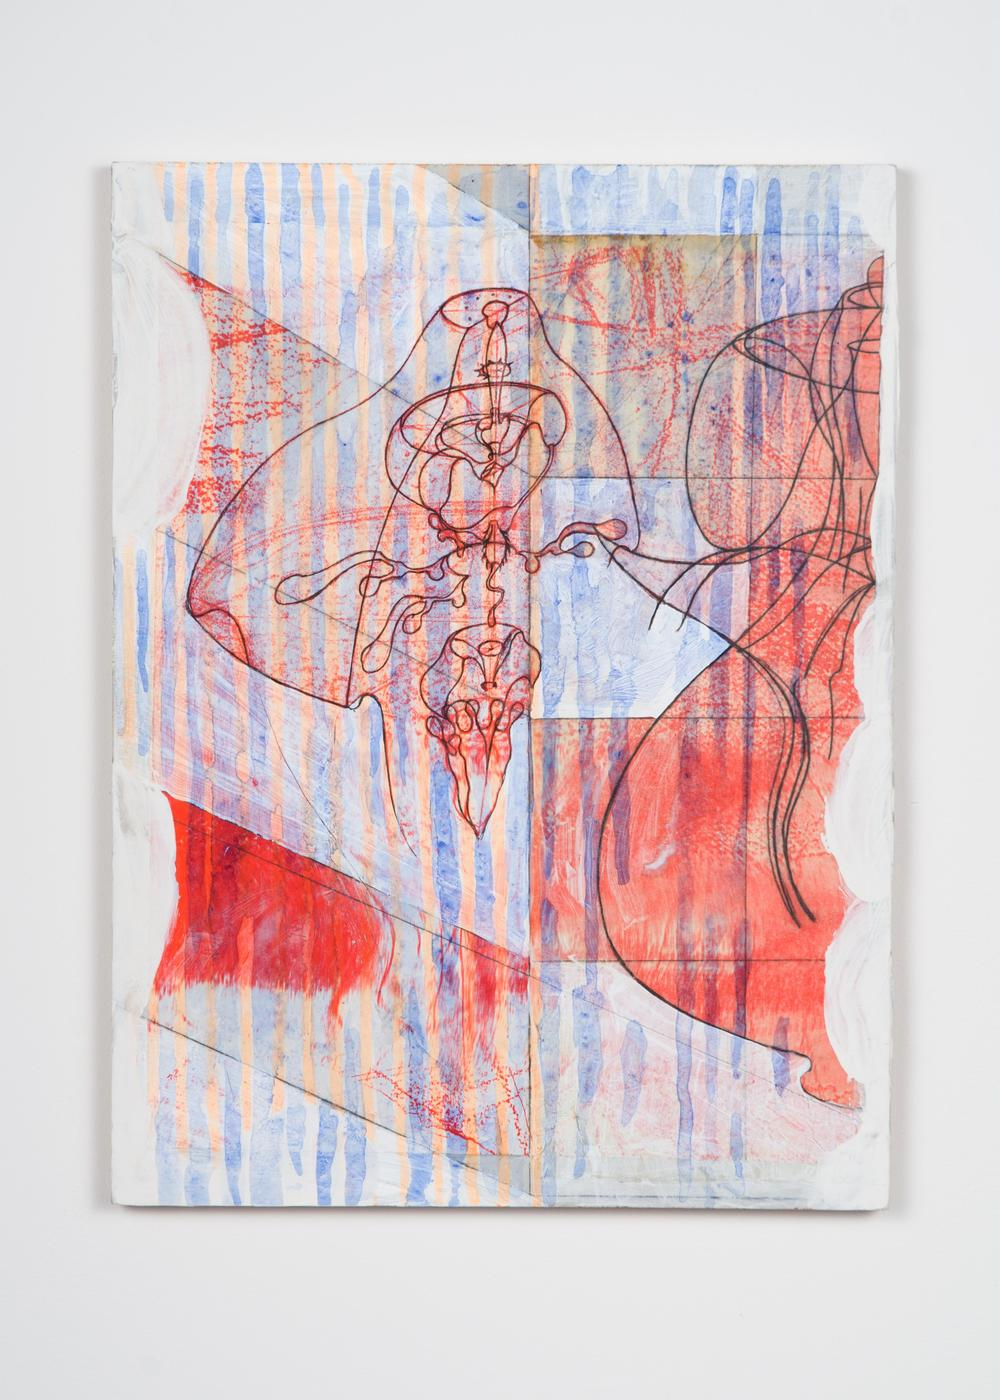 """ Untitled (Exile Sun Drawing) ""   Tristin Lowe   2014   Acrylic, Pencil, Ink, and Collaged Paper on Panel    12 5/8"" x 9 1/4"""